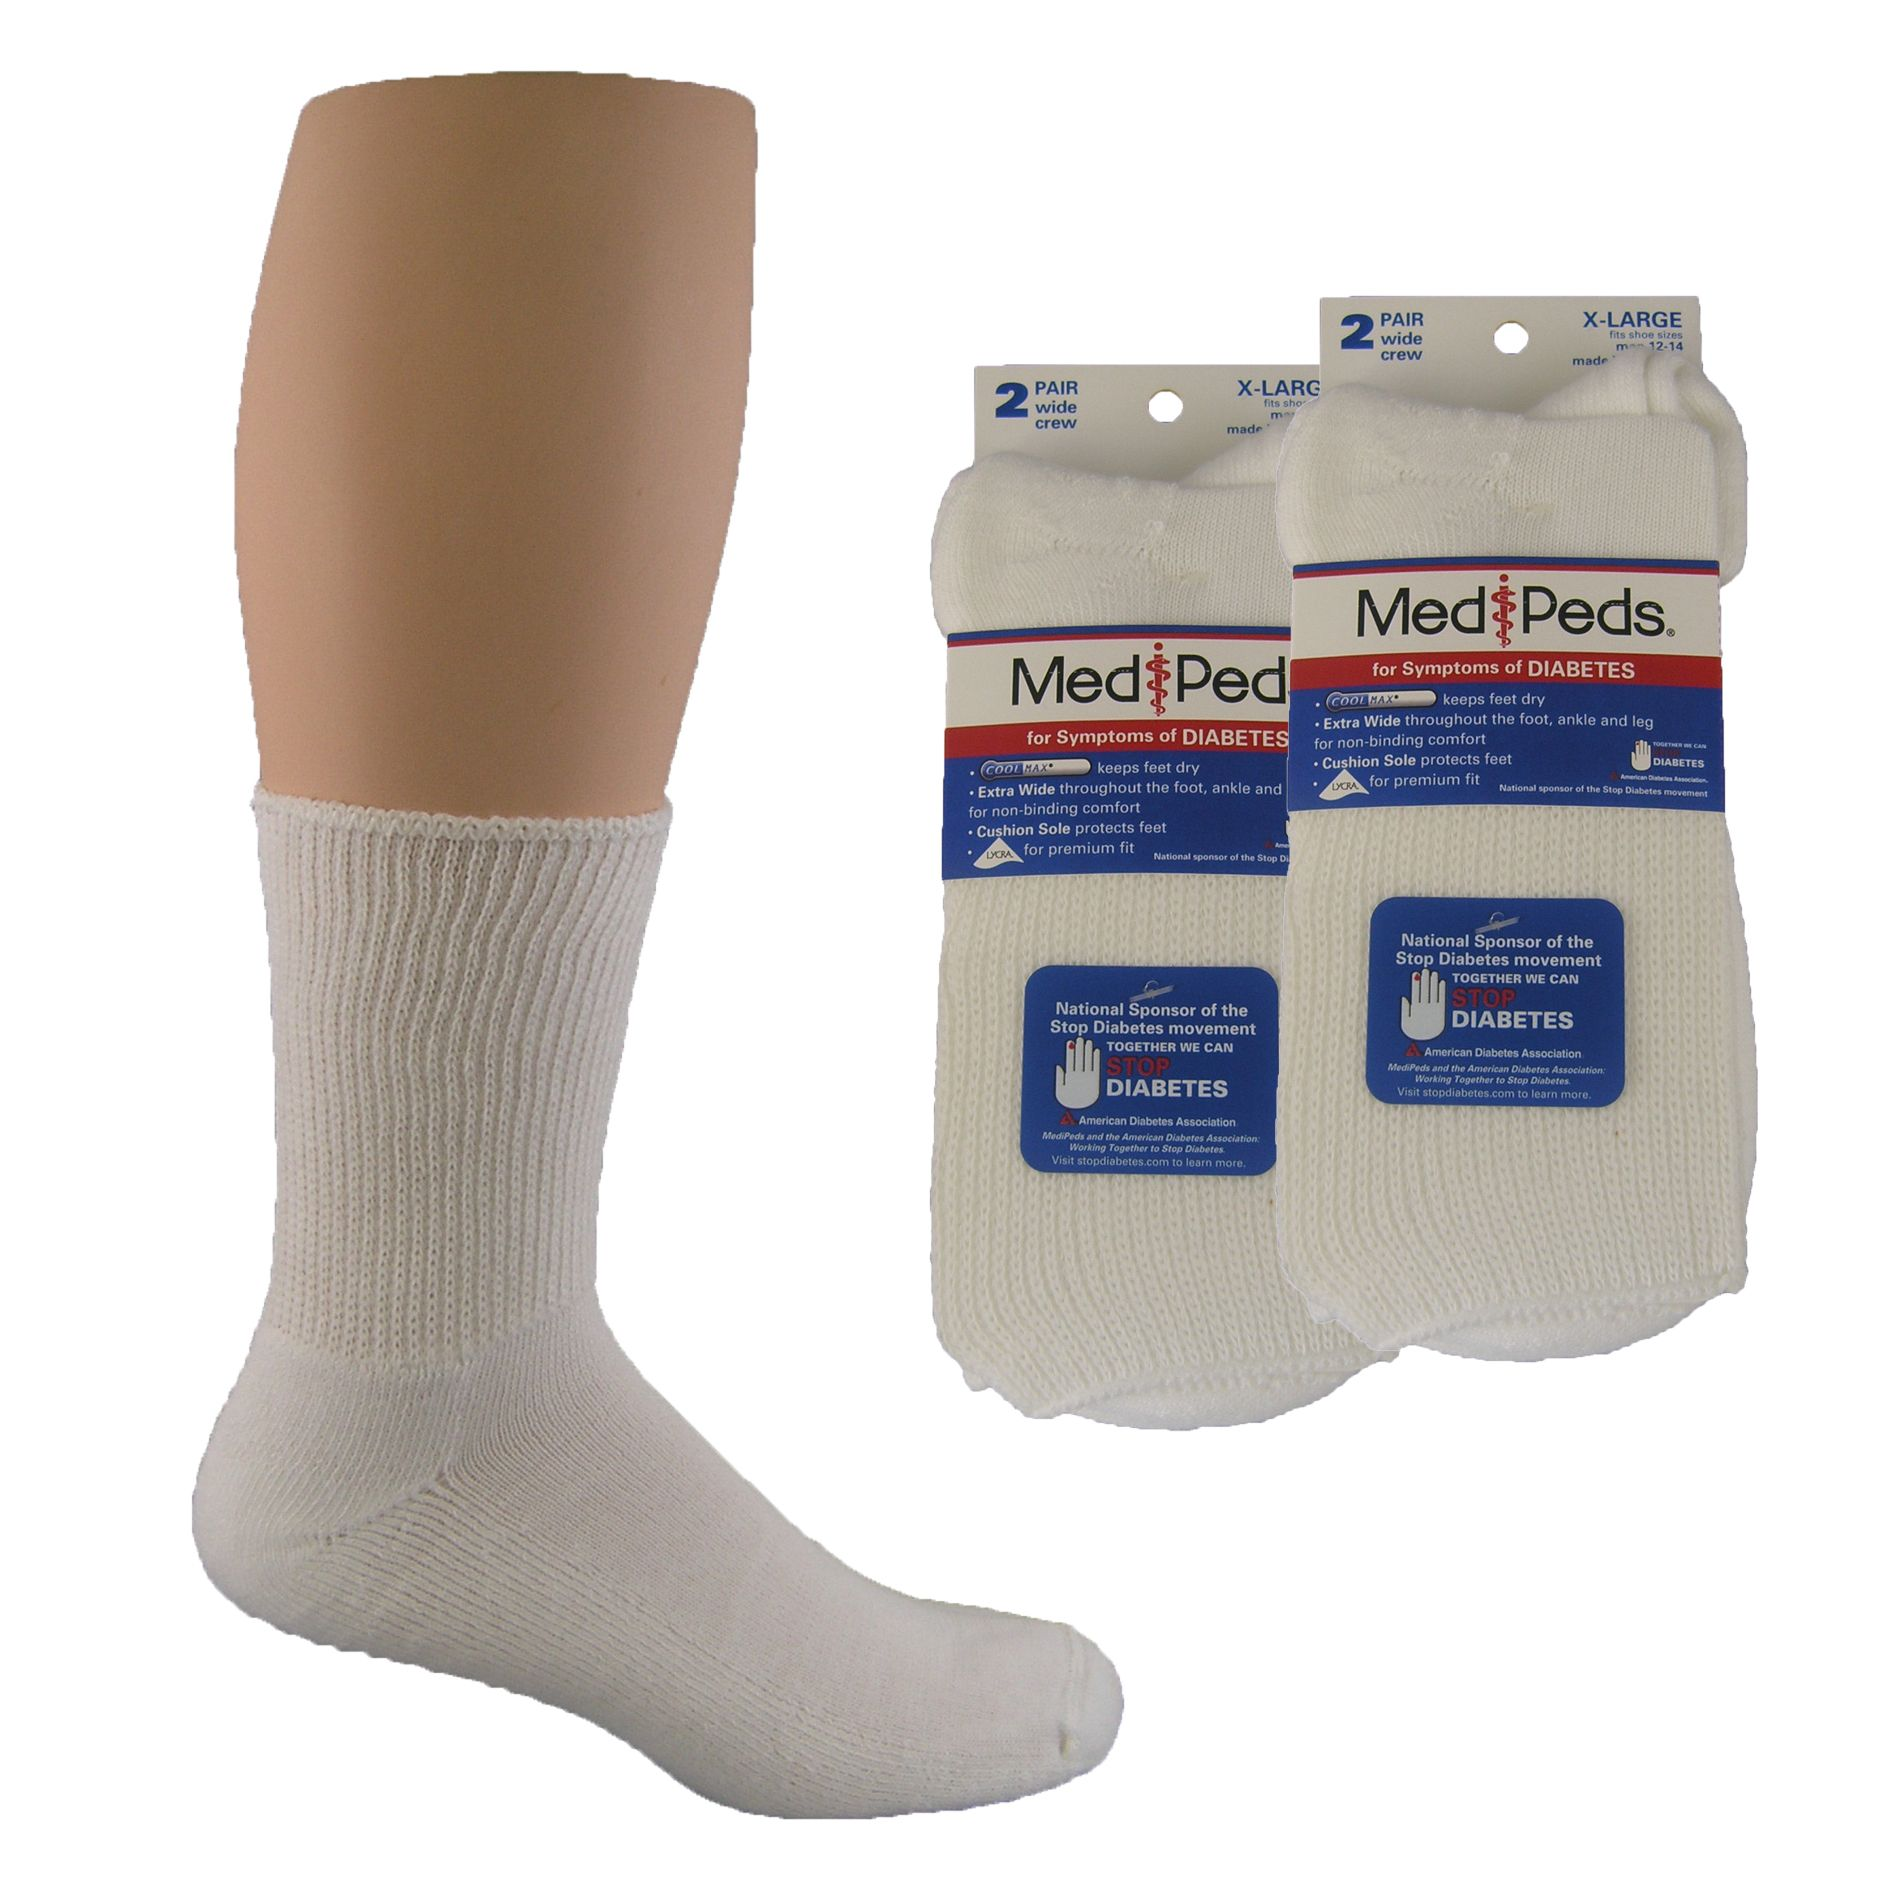 7cff0b80aa4 These MediPeds Diabetic socks are EXTRA Wide Crew sock with Cushion Sole to  Protect Feet.